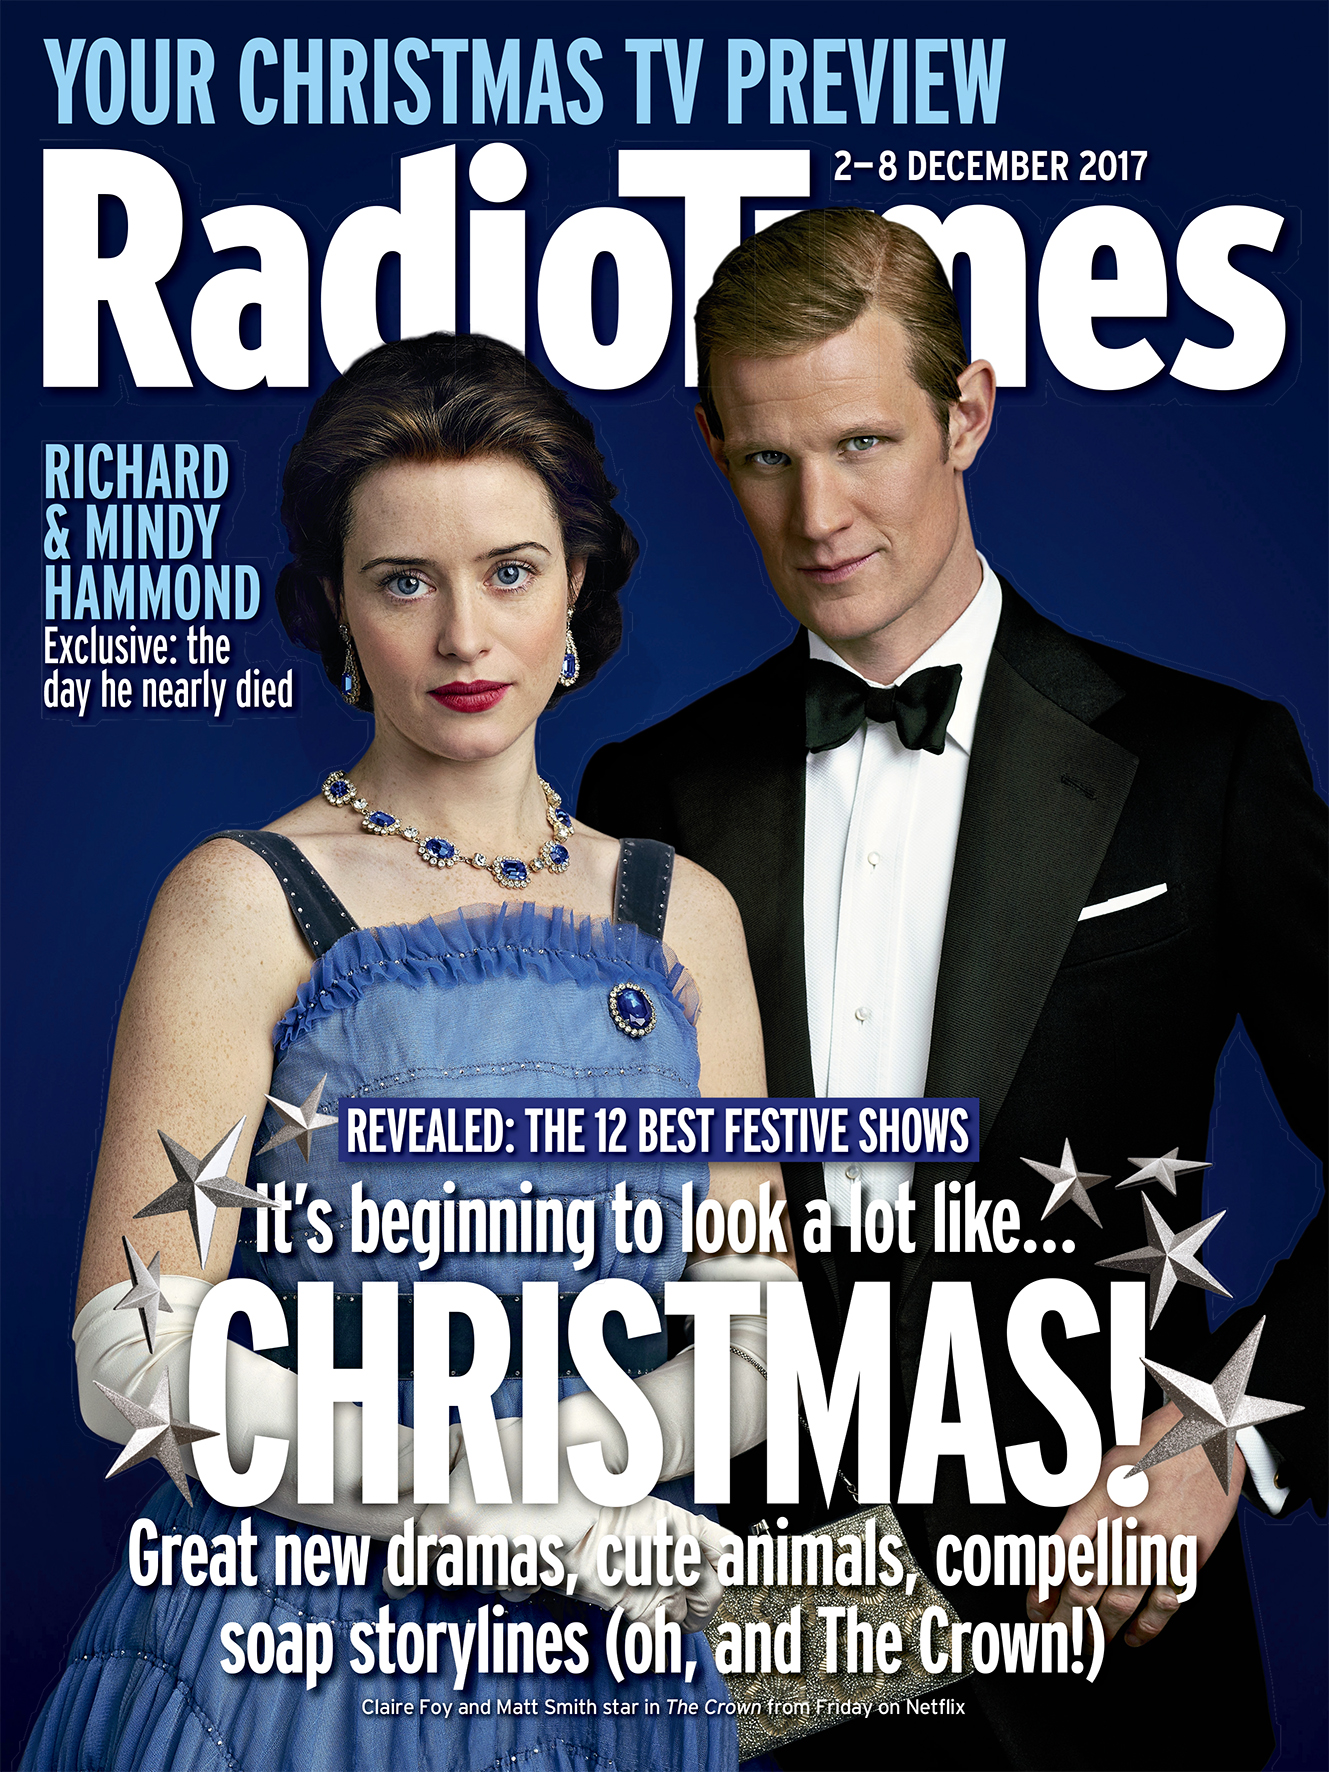 Radio Times is out now.